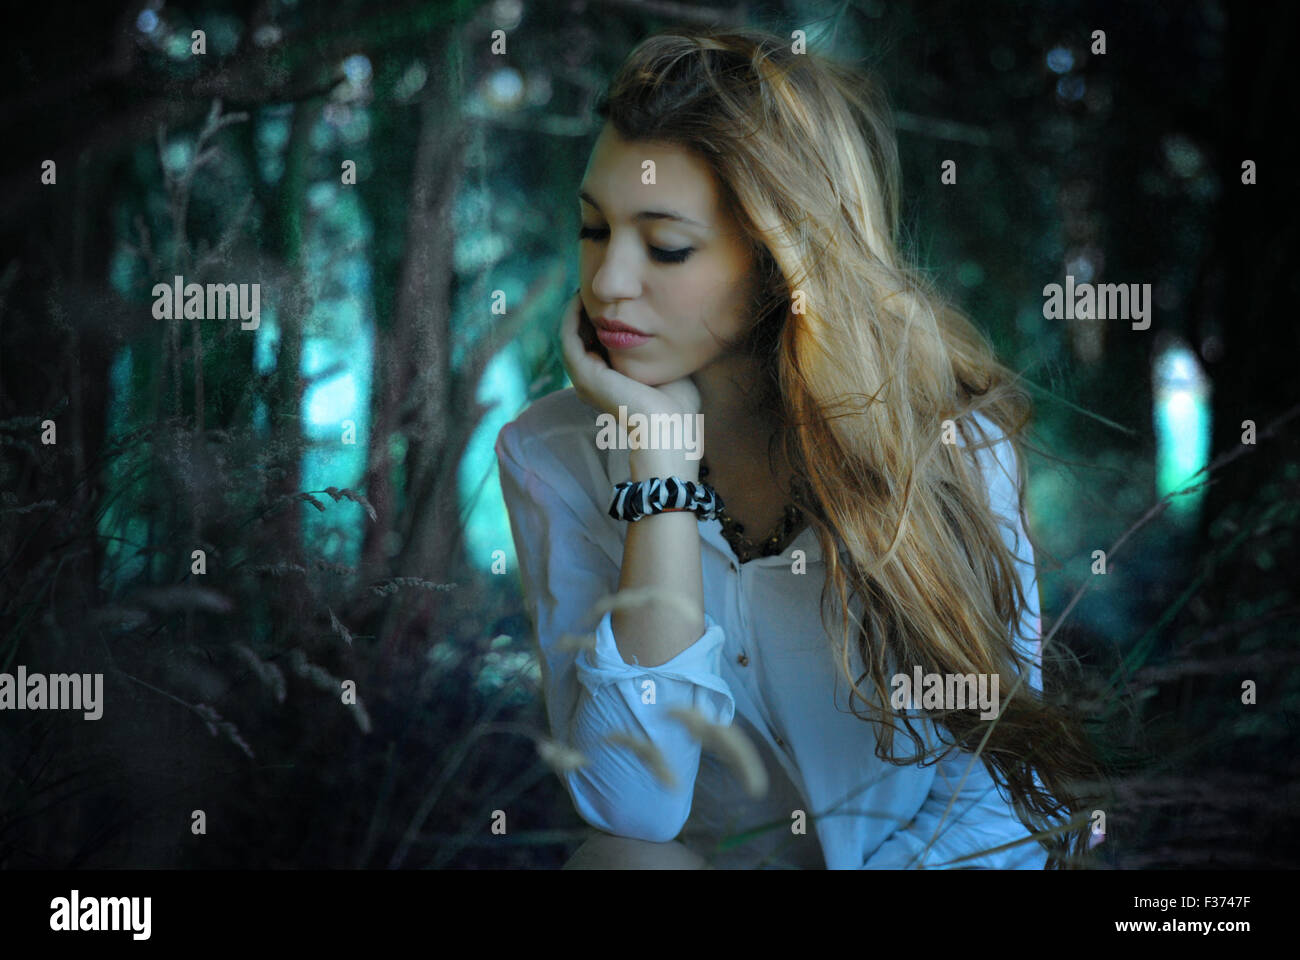 ginger girl touching her face looking down in the forest - Stock Image